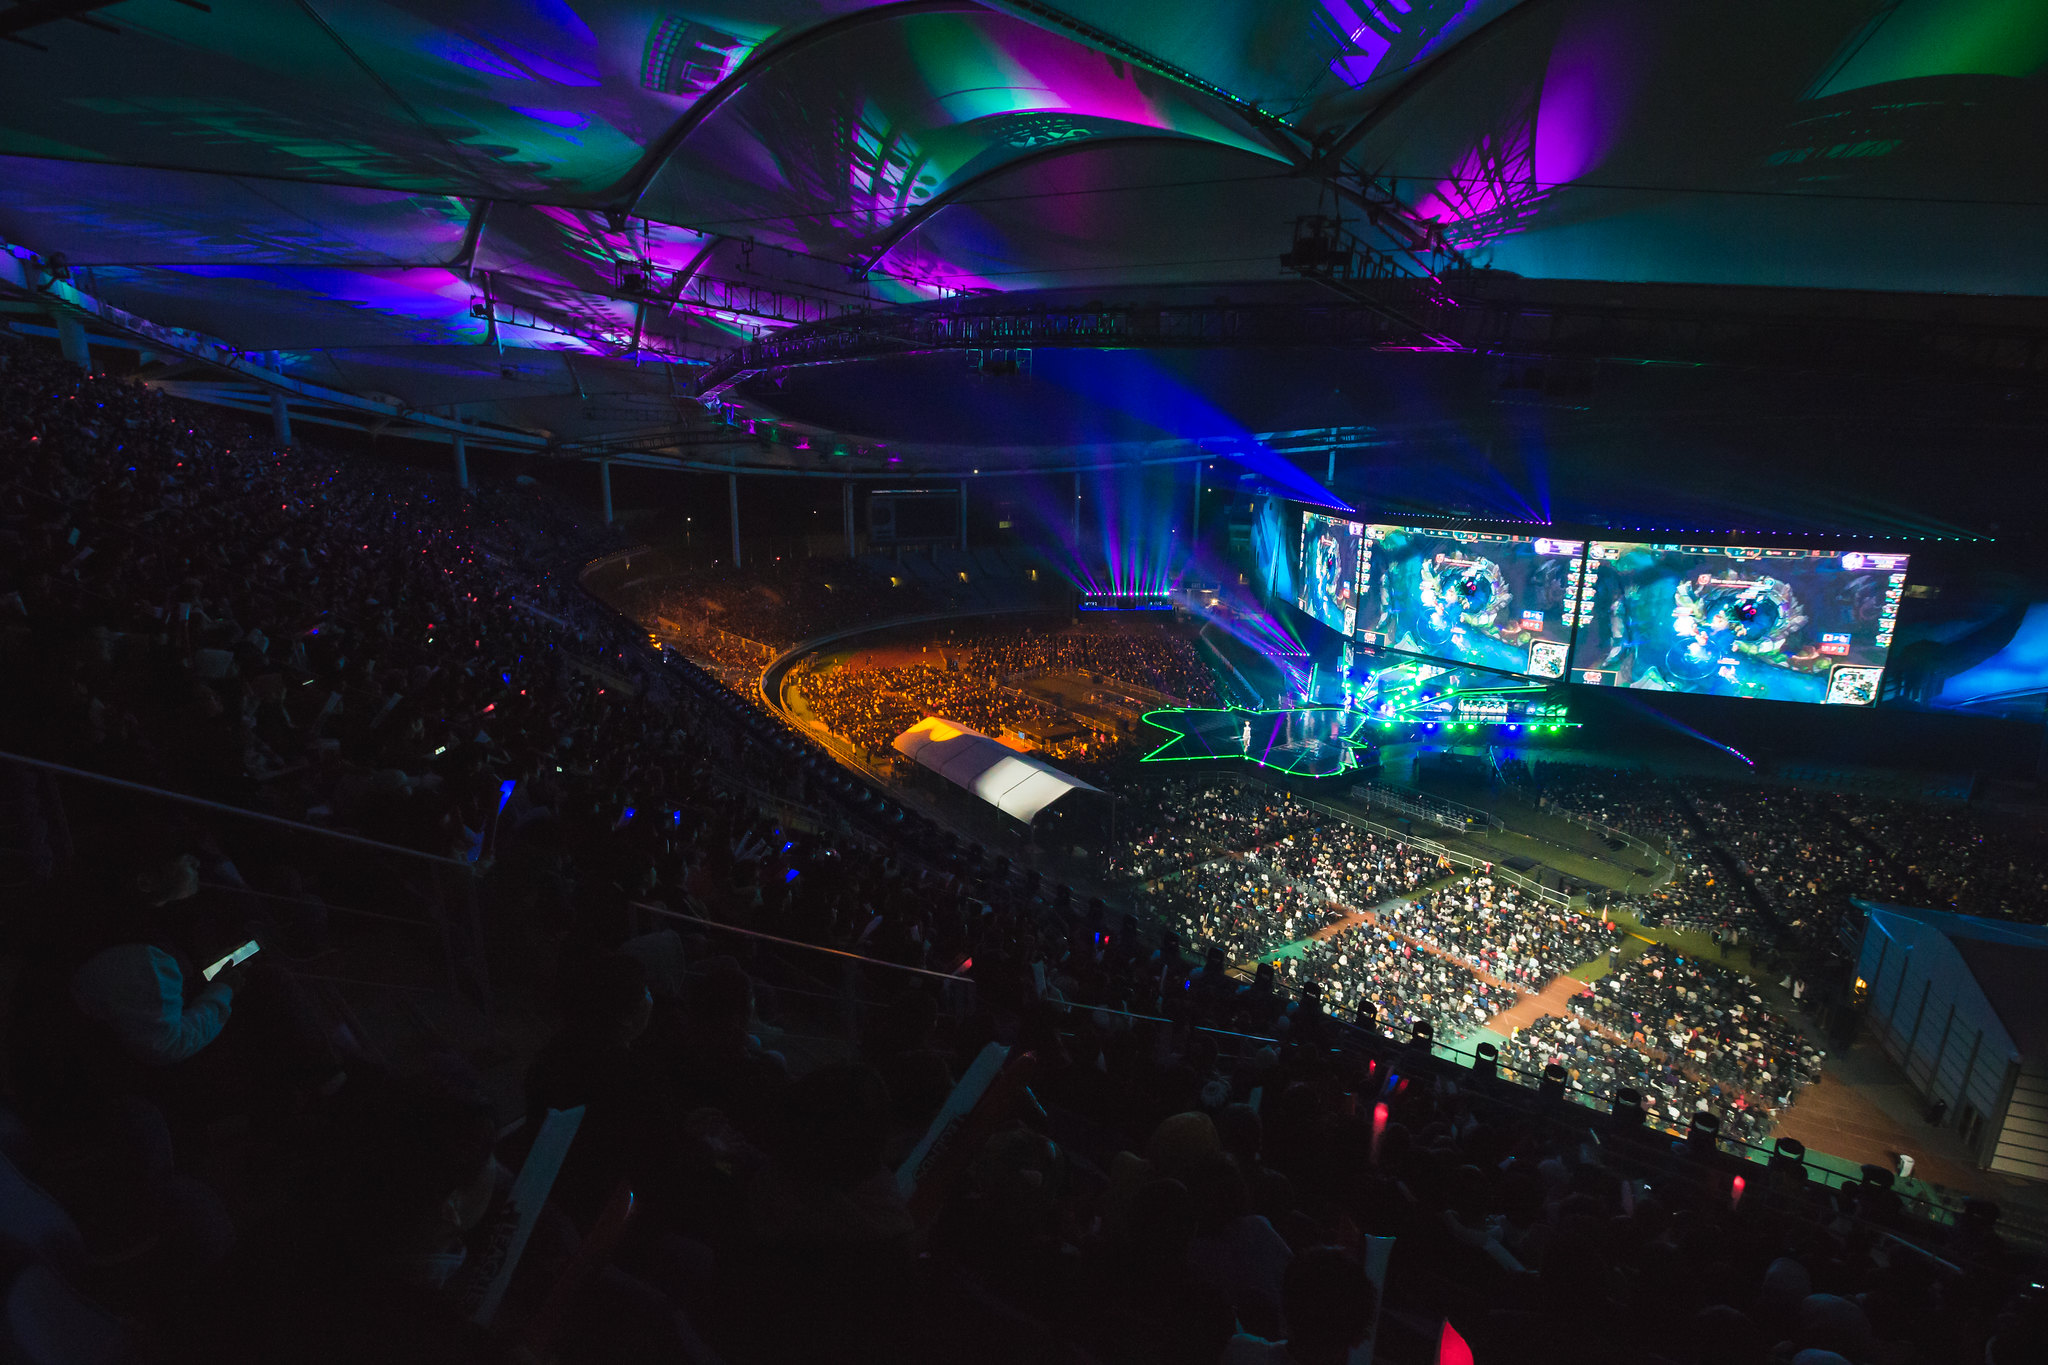 Study shows esports close to surpassing Super Bowl in viewership numbers